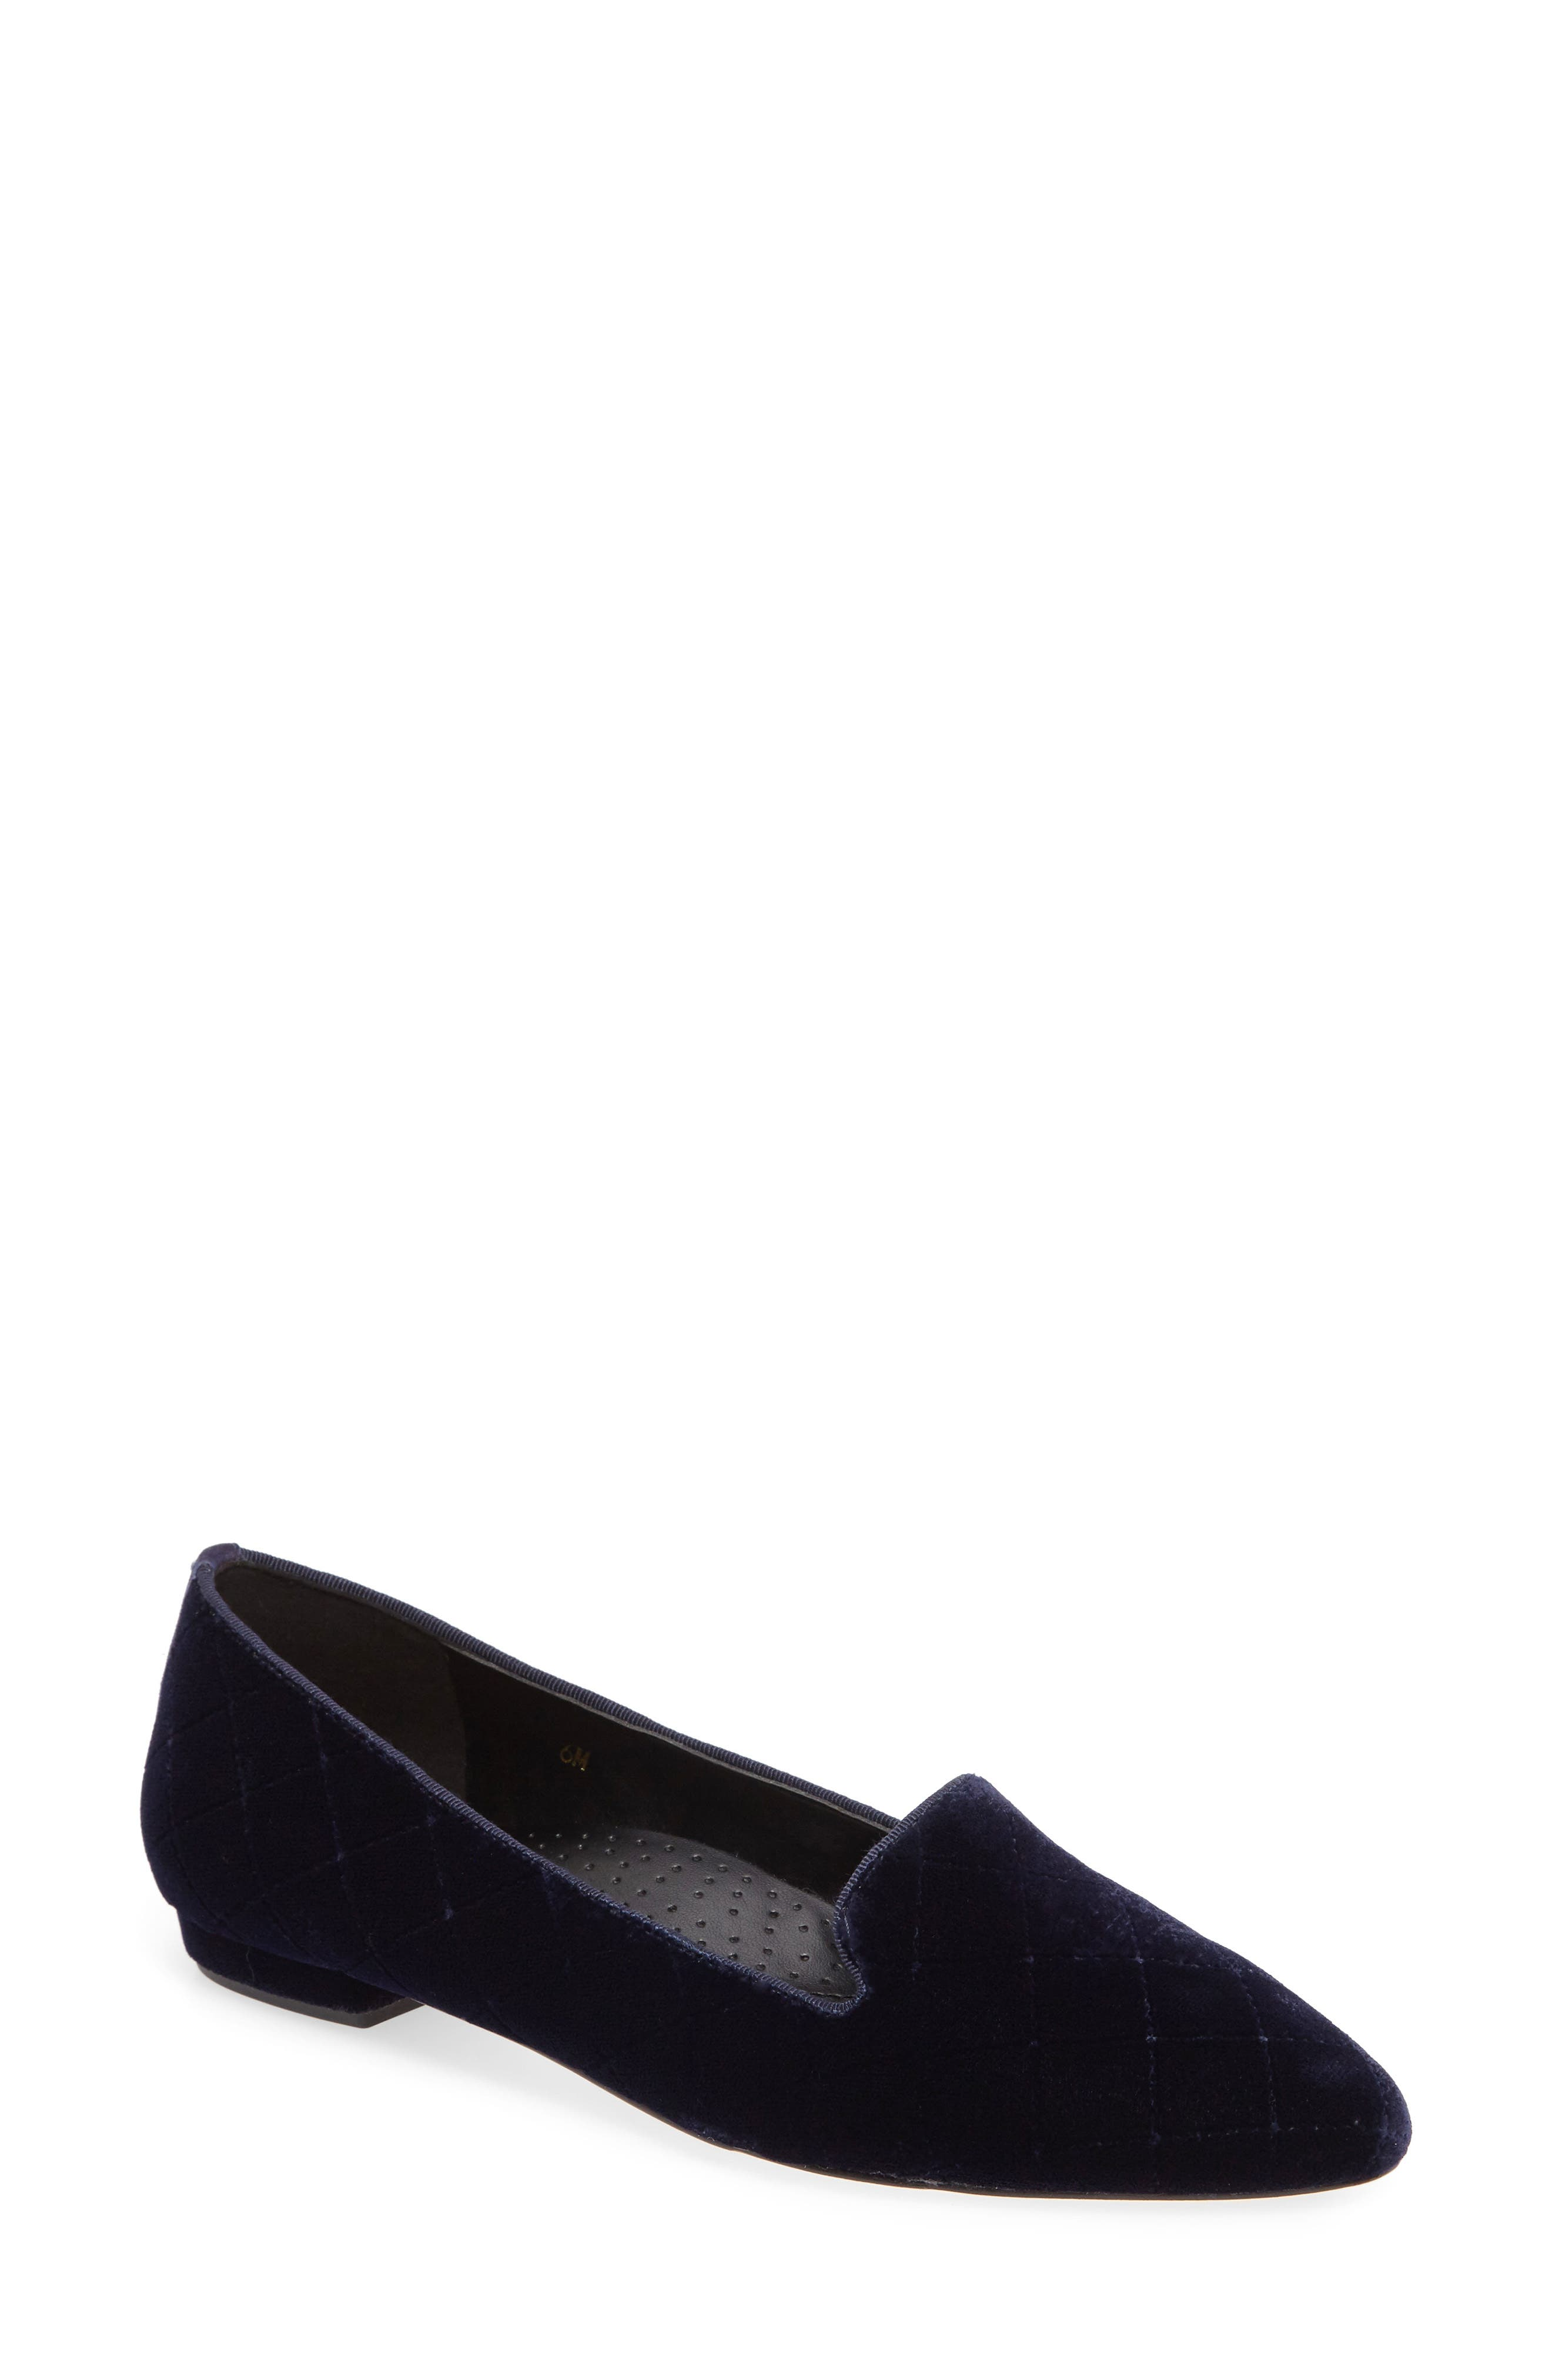 Gannie Diamond Pattern Loafer,                             Main thumbnail 2, color,